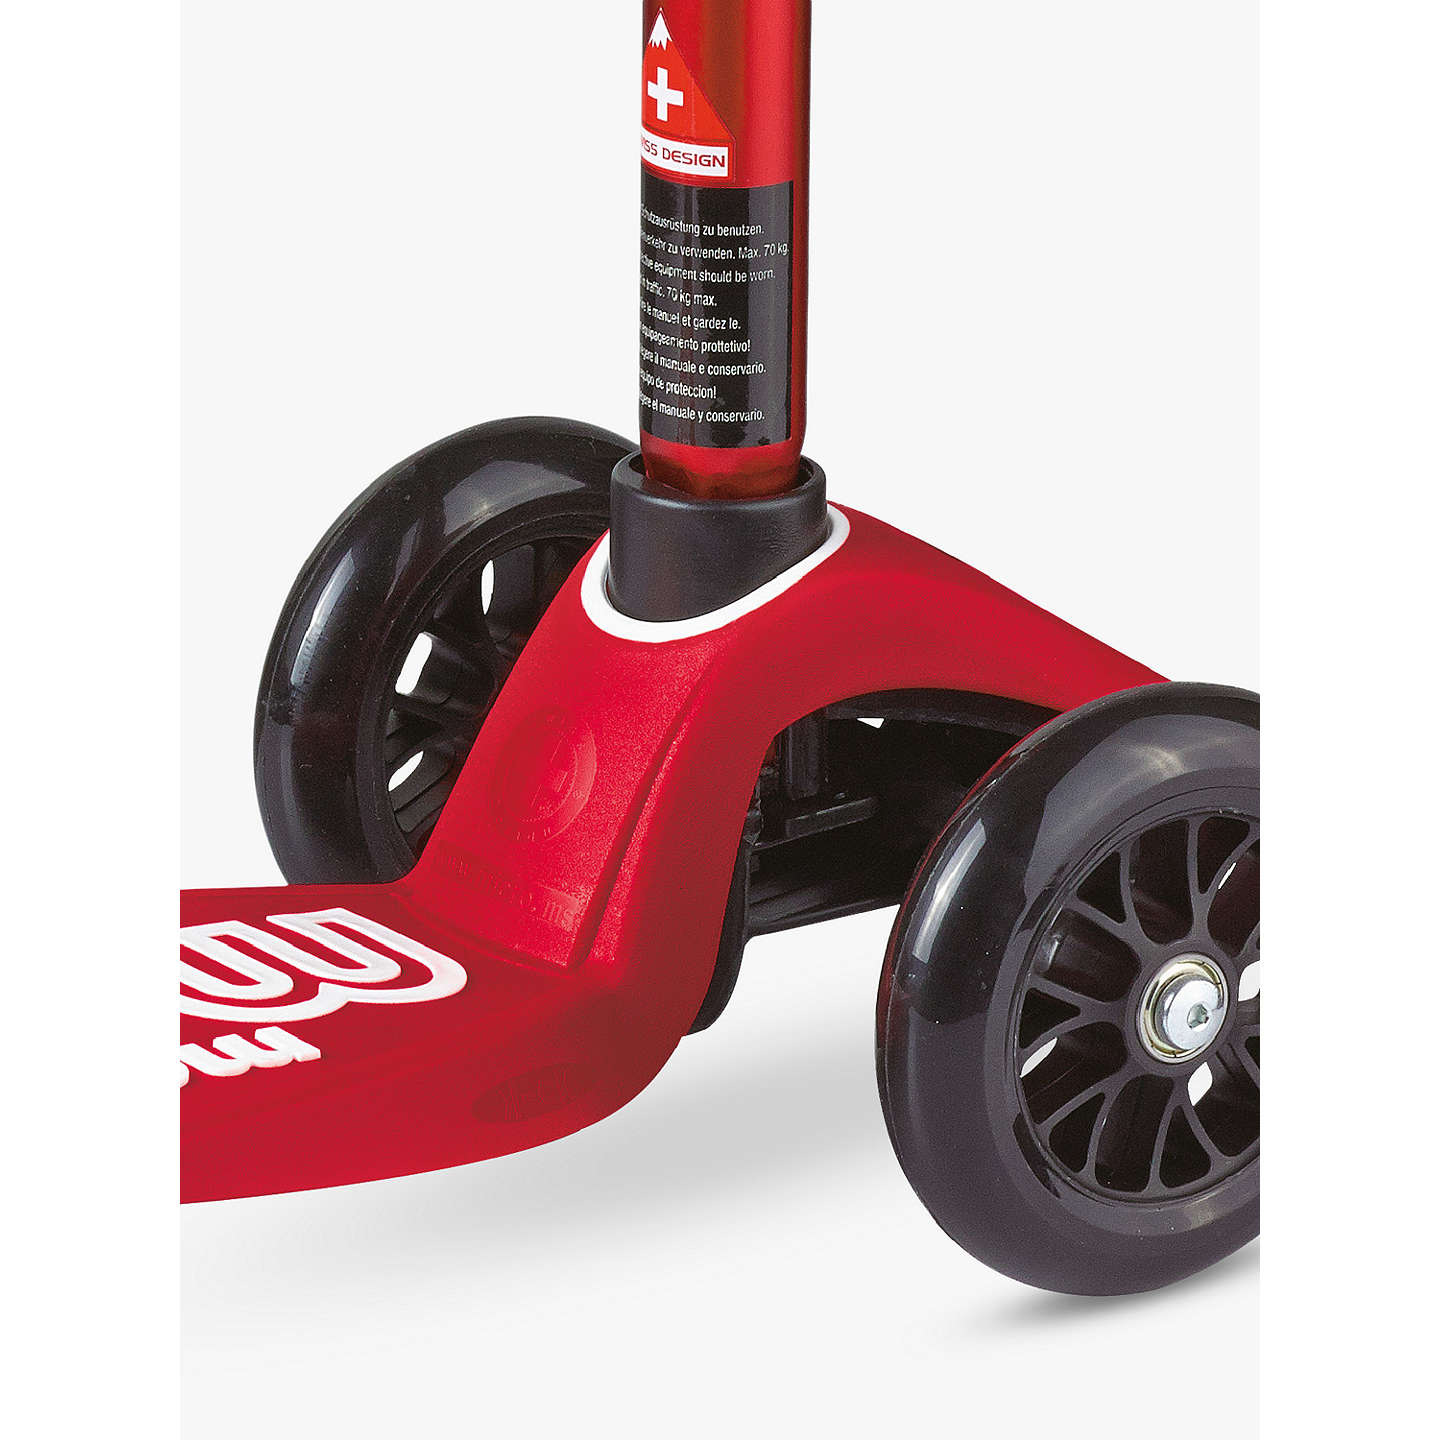 BuyMaxi Micro Deluxe Scooter, 5-12 years, Red Online at johnlewis.com